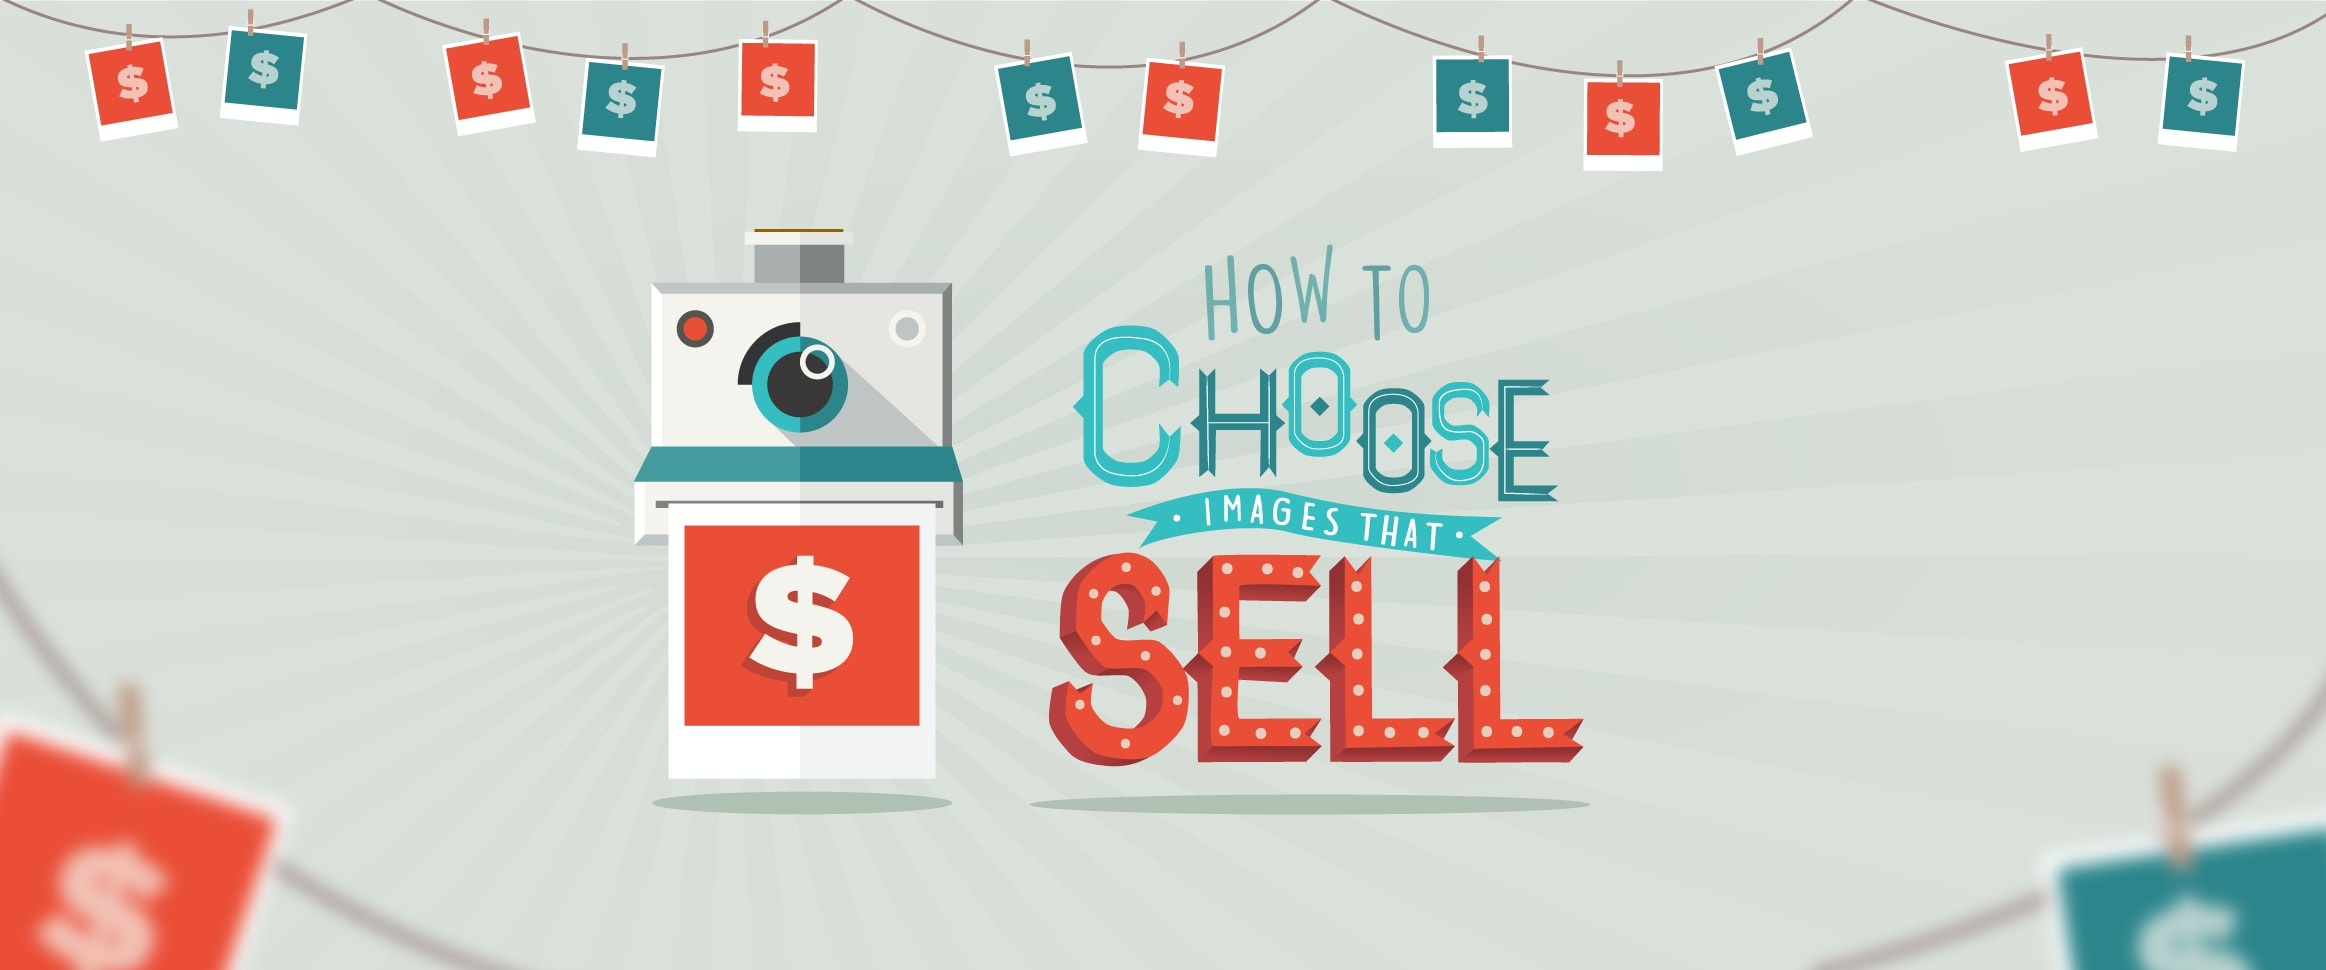 How to Choose Images that Sell